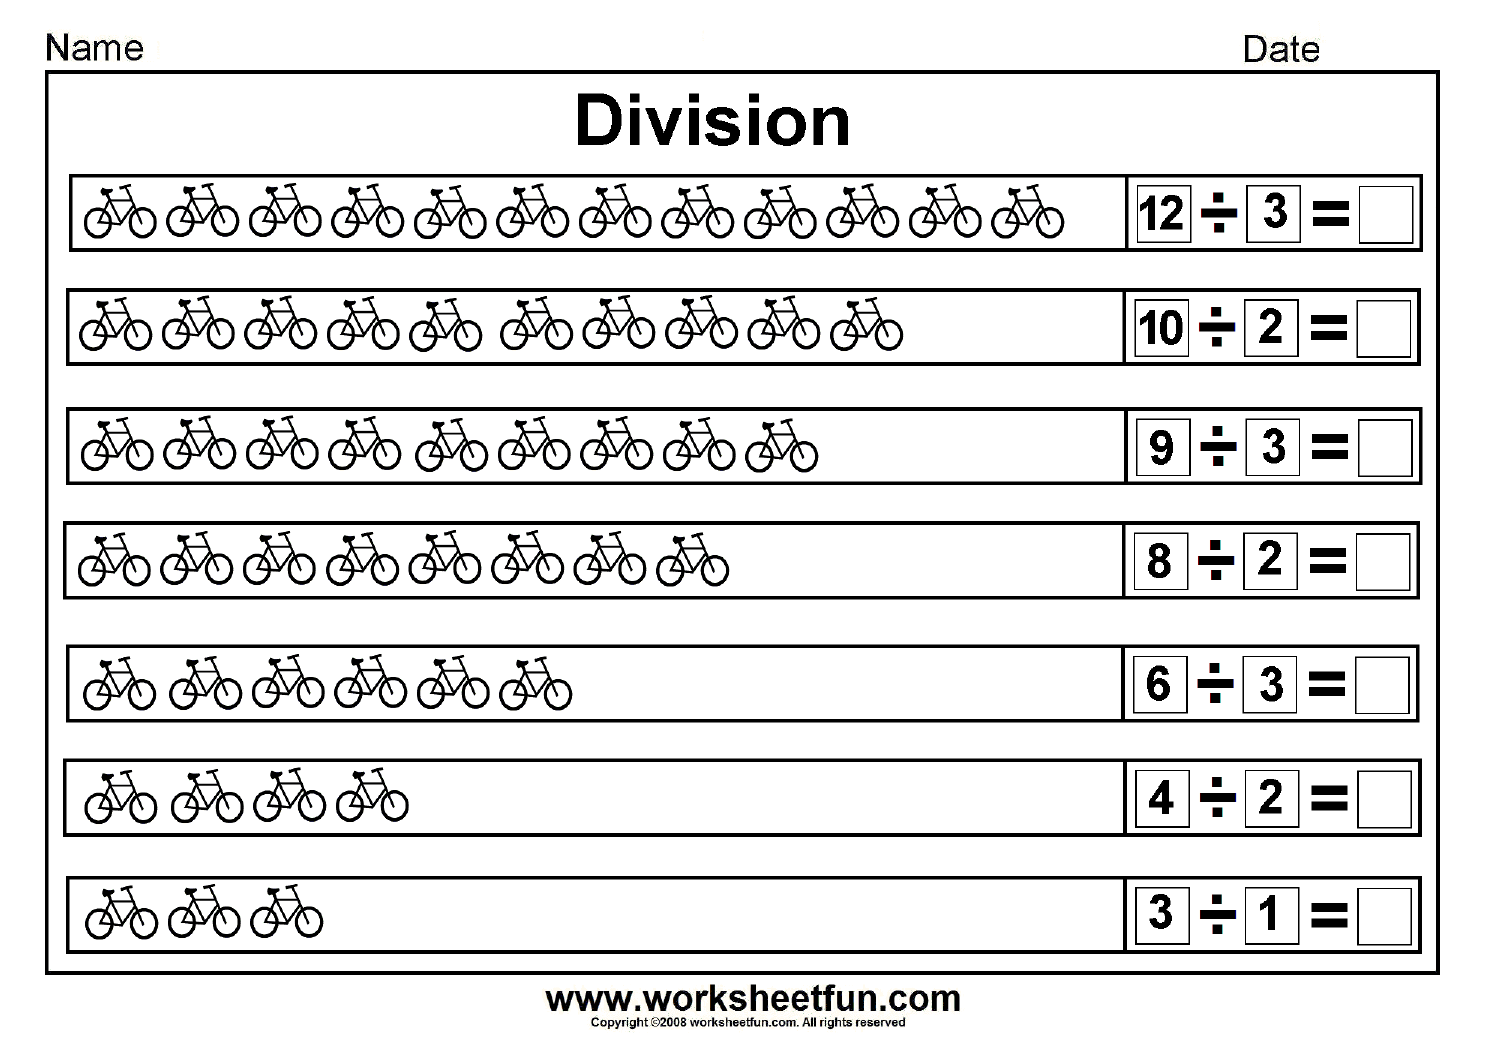 Division Worksheets On Worksheetfun Com Division Worksheets Mathematics Worksheets Math Division Worksheets